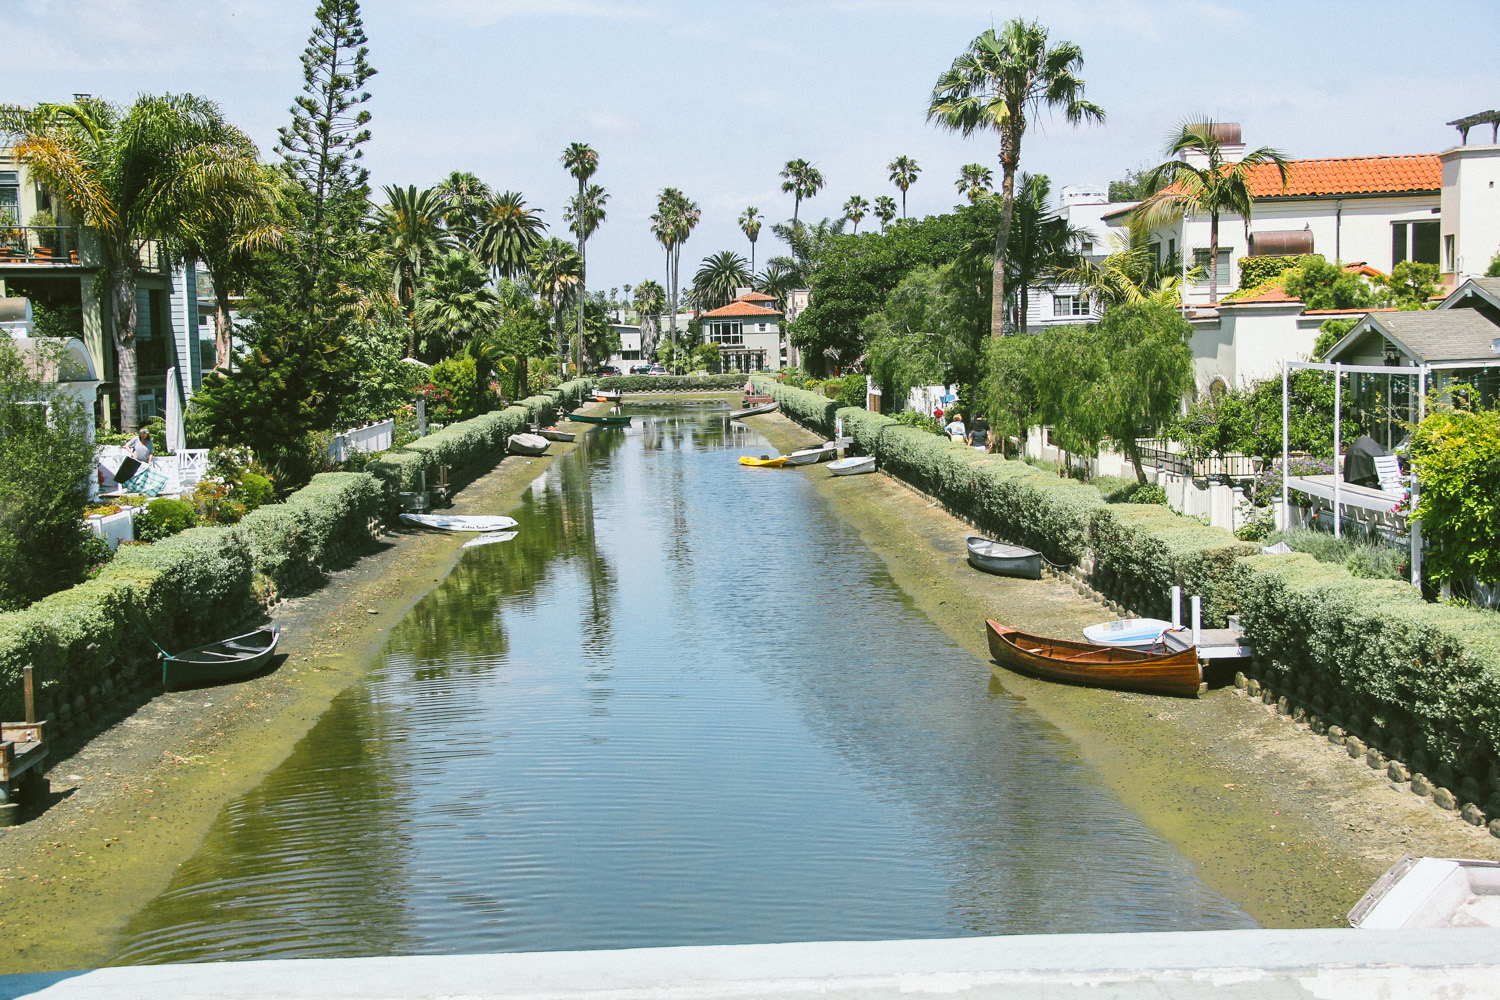 Venice Canals!